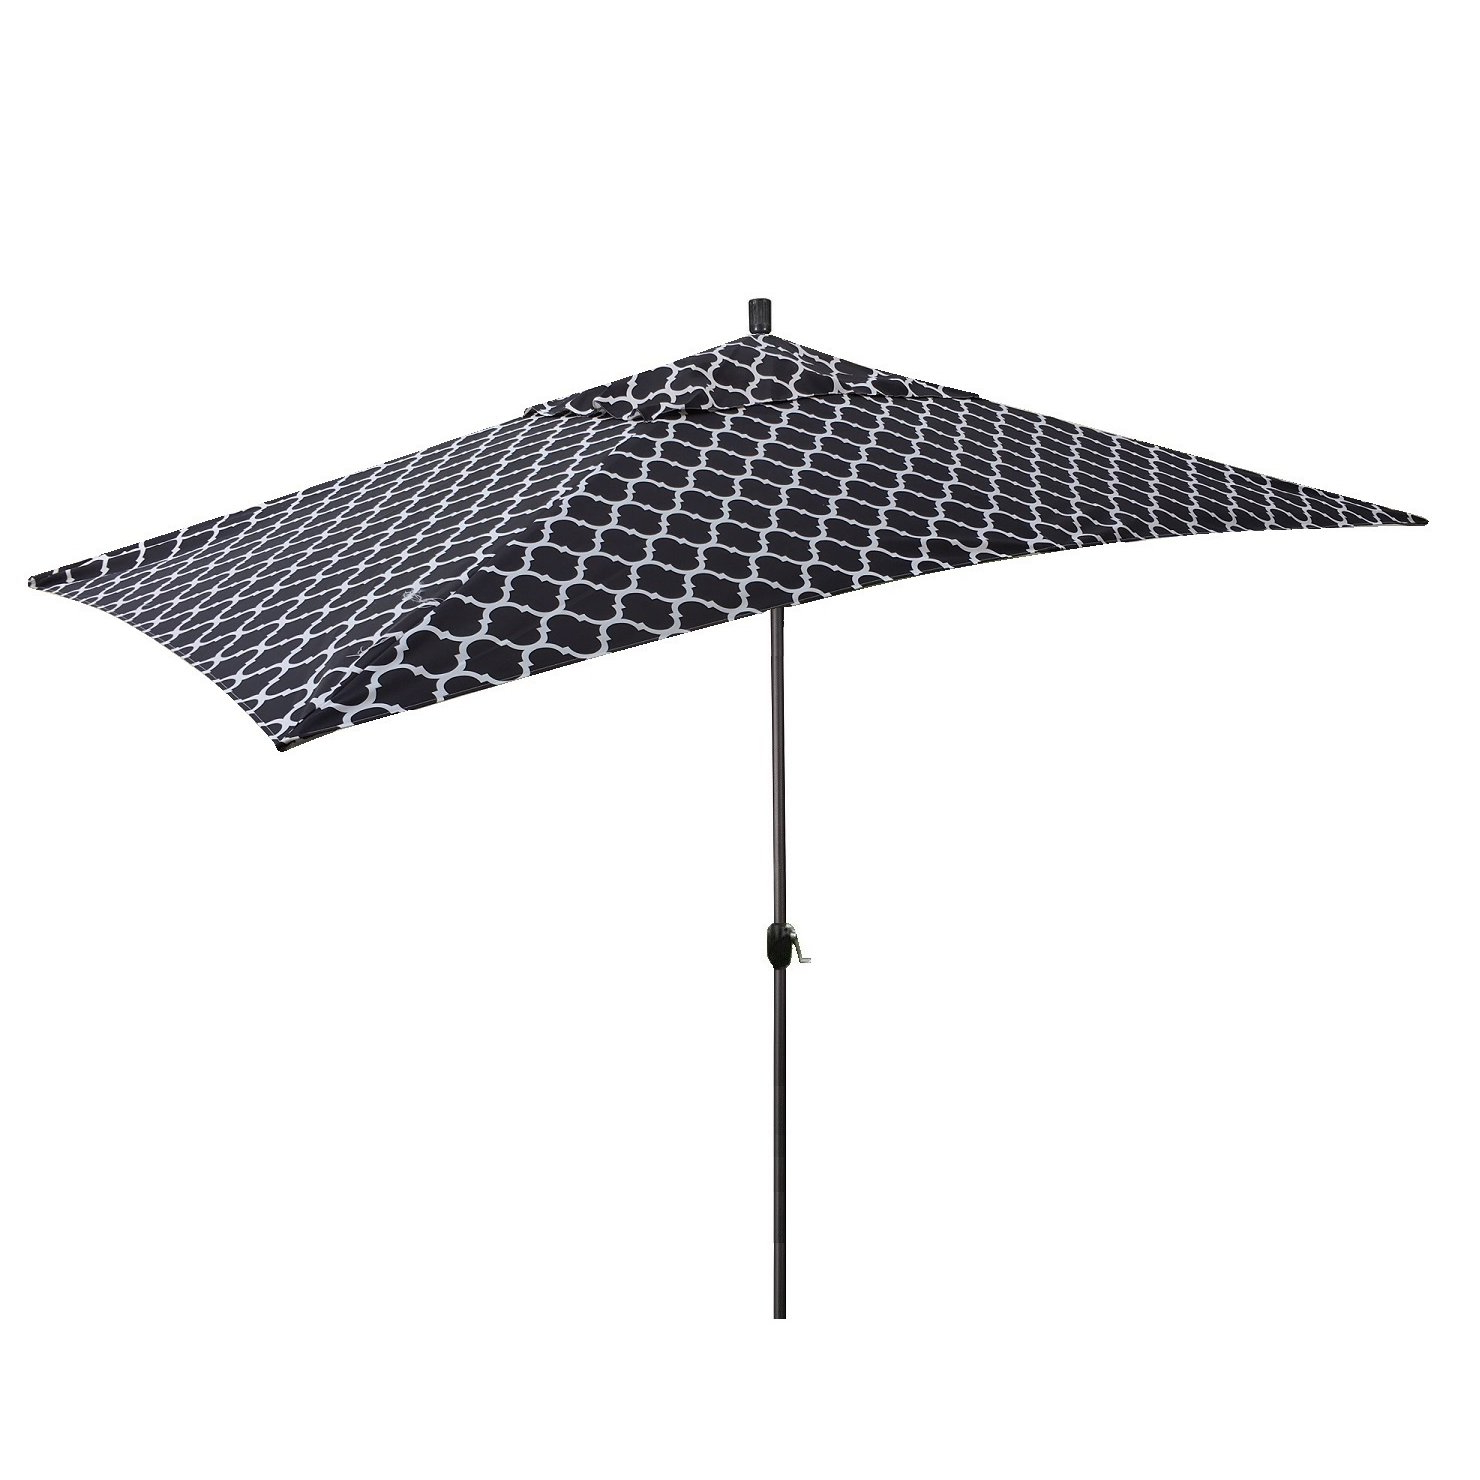 Fashionable Gries Rectangular Market Umbrellas Regarding Sherlyn 10' X 6' Rectangular Market Umbrella (View 3 of 20)